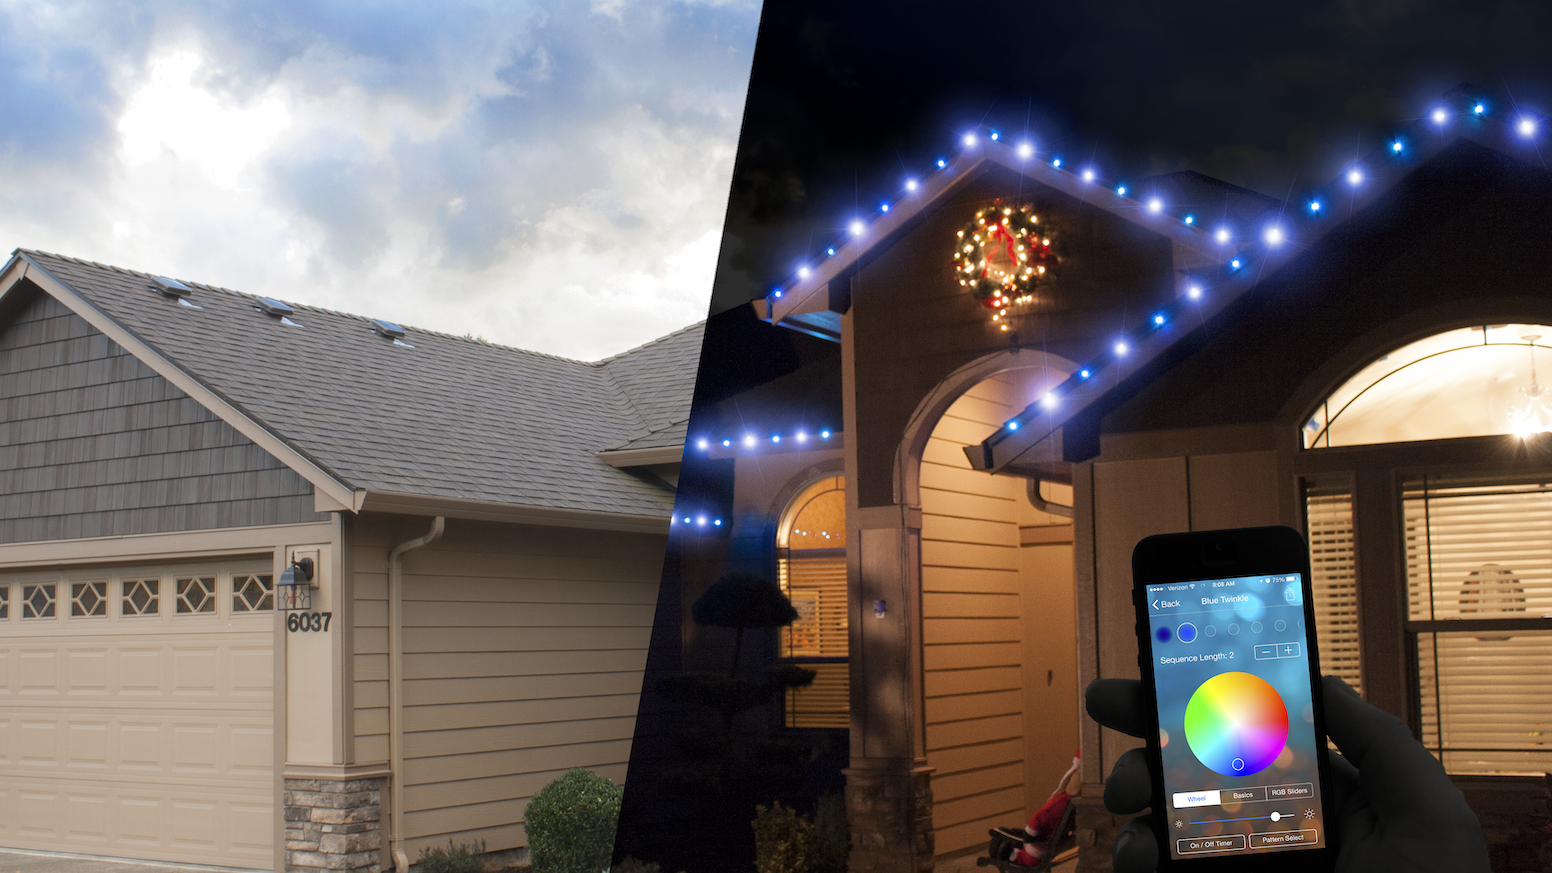 Invisible by day, radiant at night. A smarter, safer and more colorful solution to lighting your home that you never need to take down.